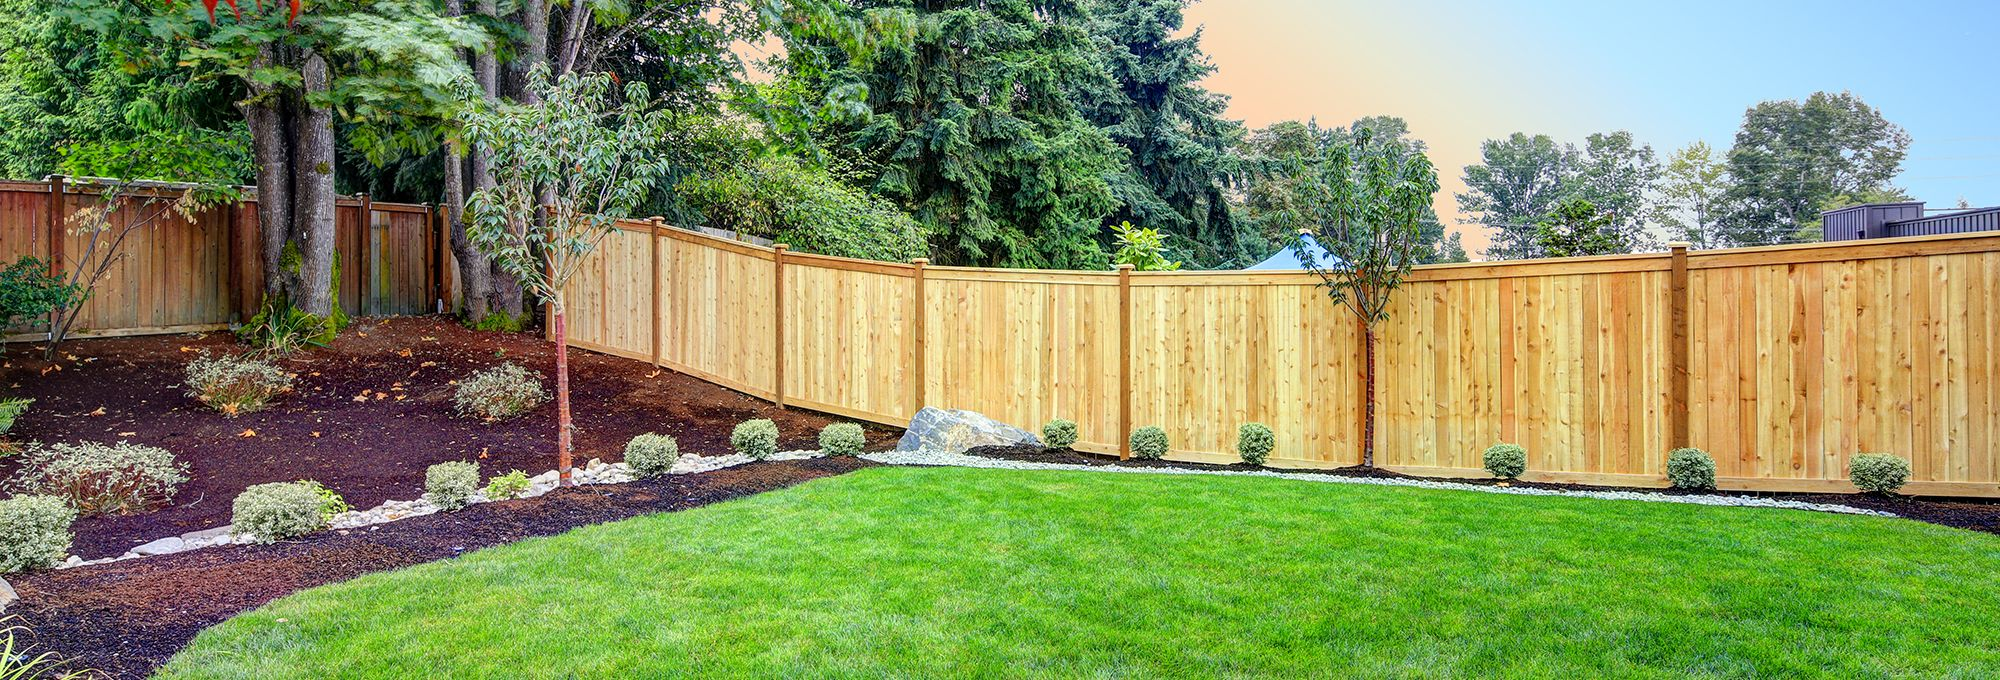 Quality Fencing At Affordable Prices